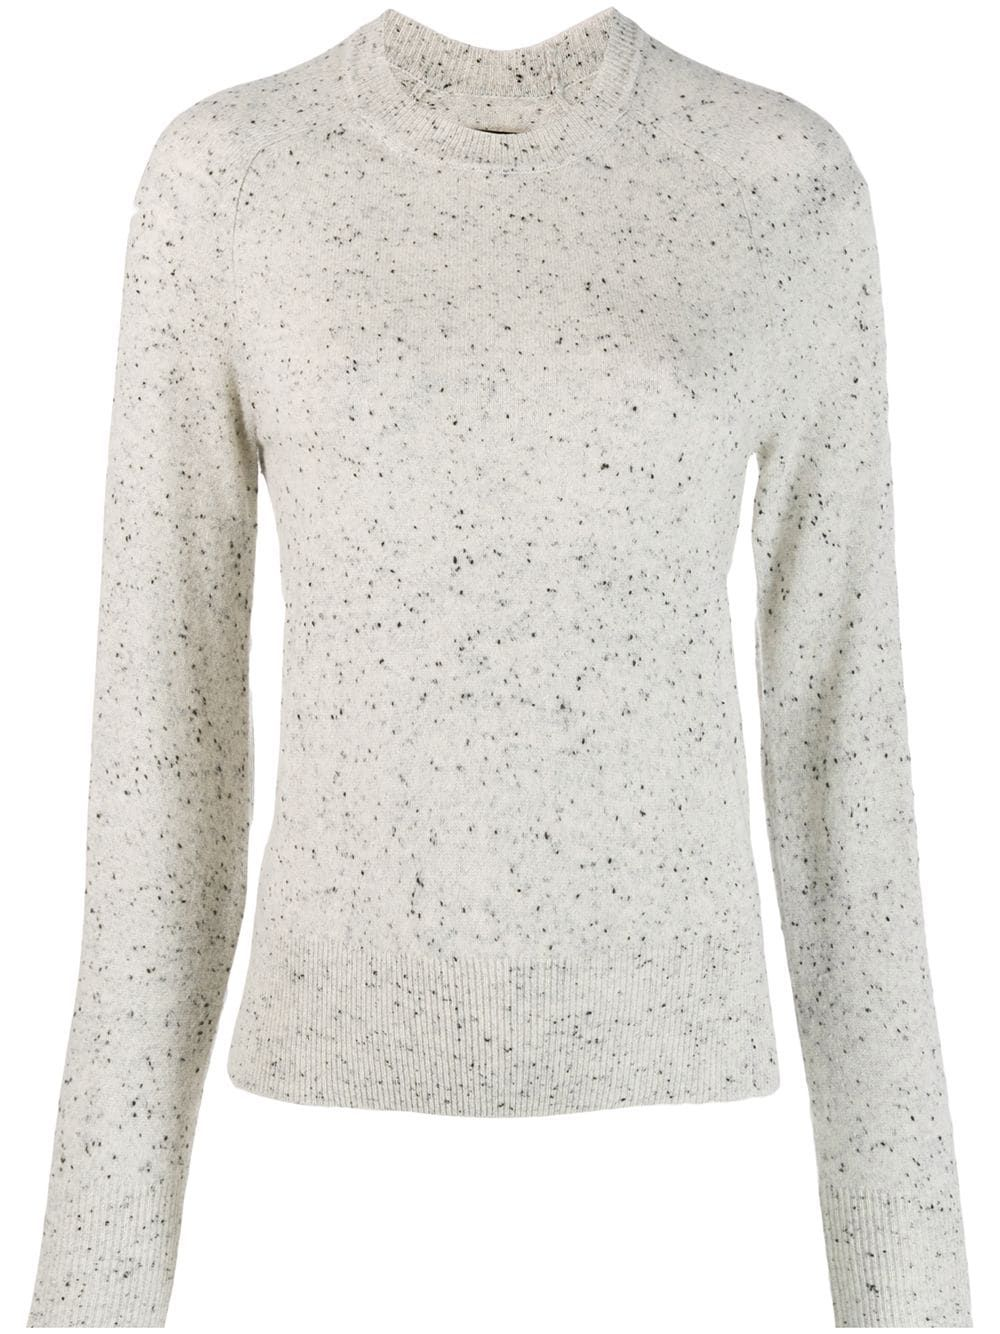 Photo of Isabel Marant Crew Neck Knitted Jumper Aw19